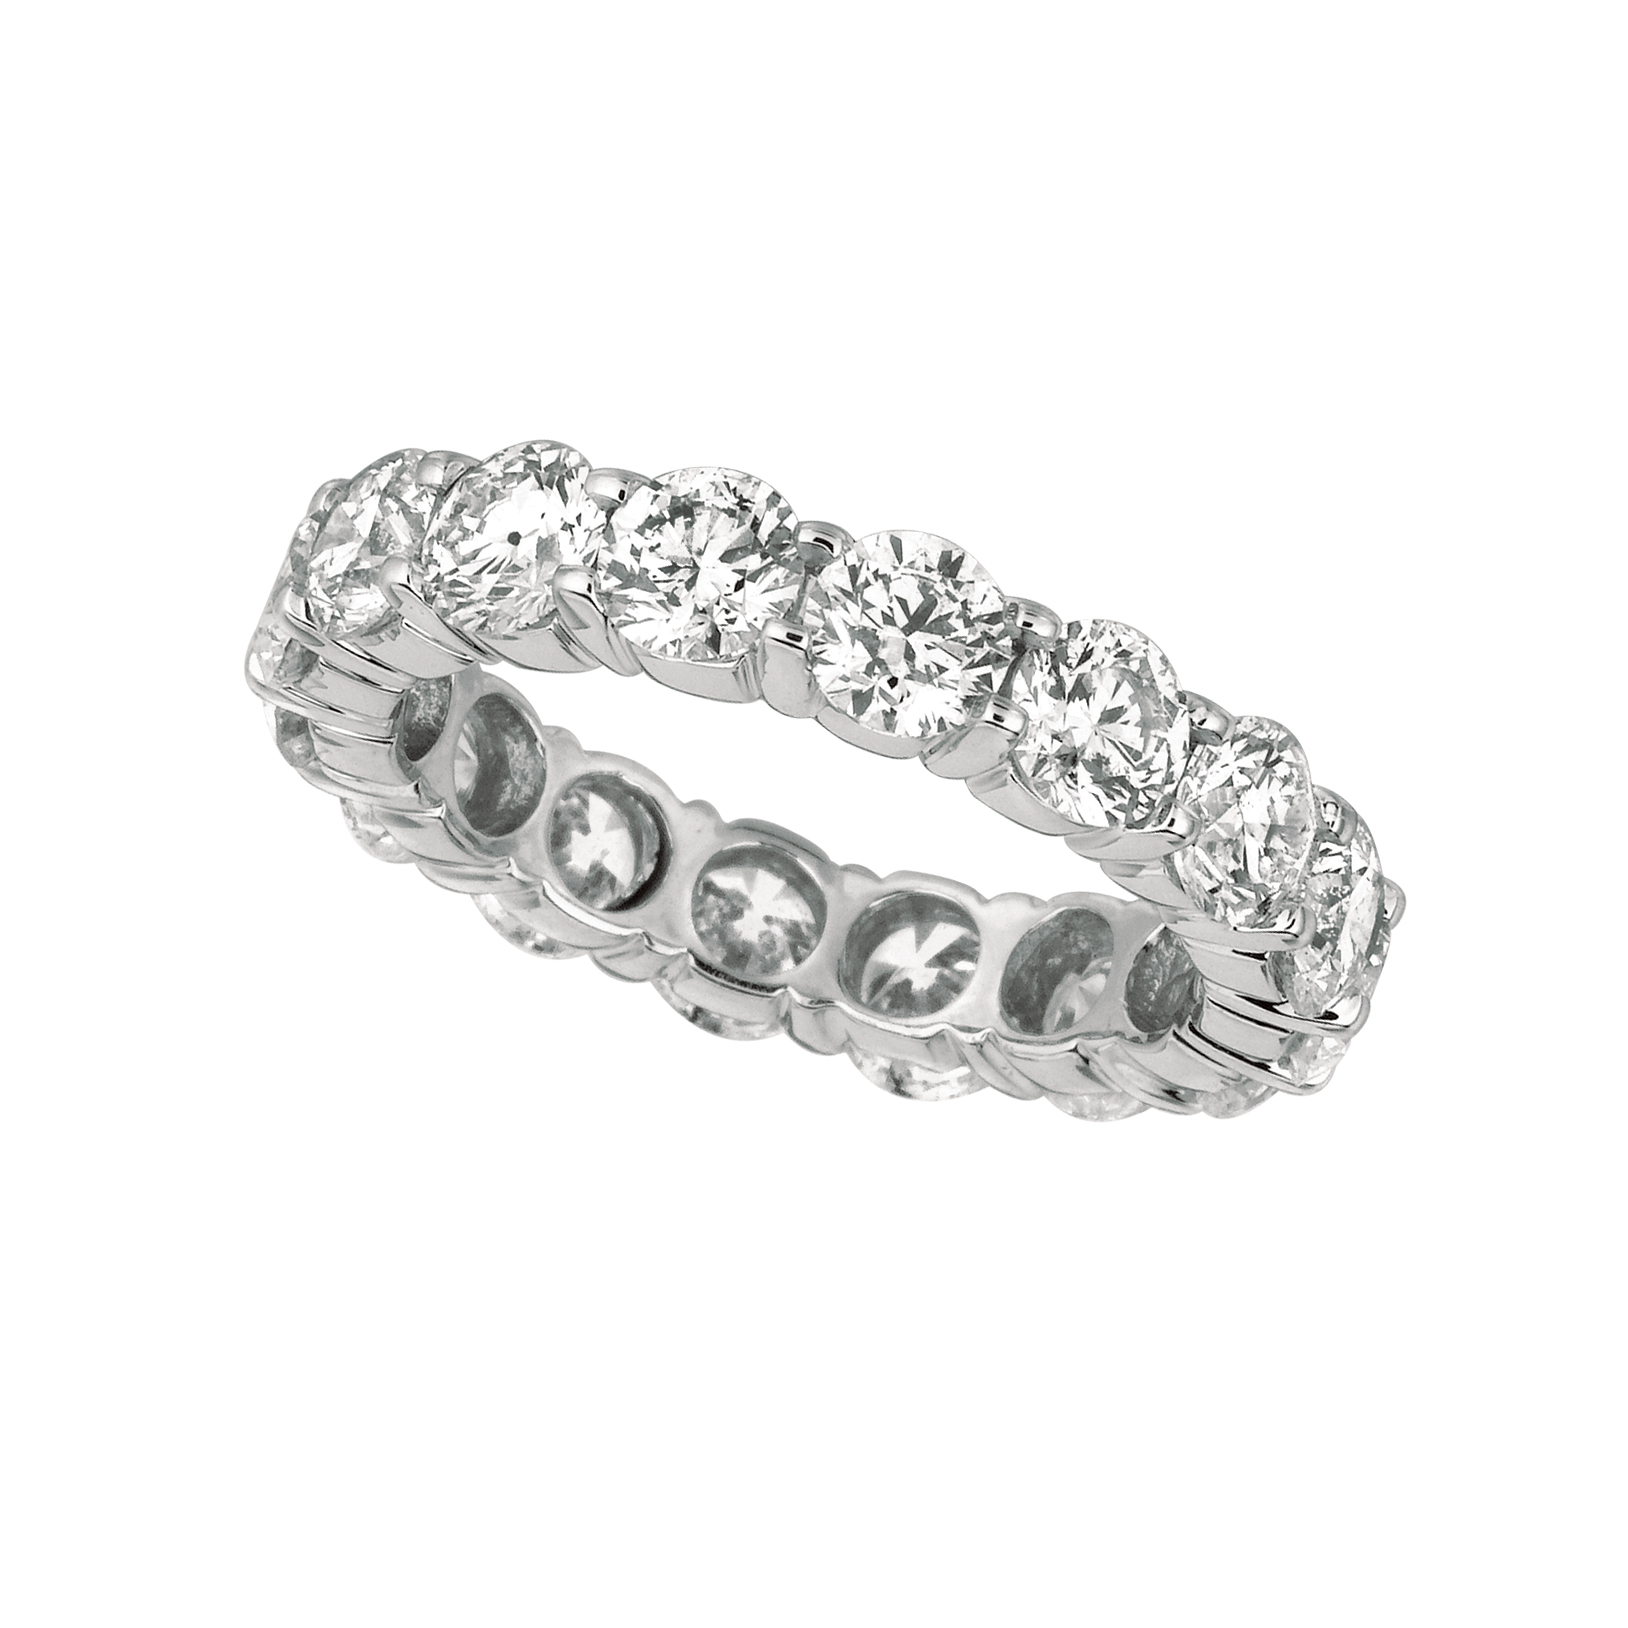 nuha cushion cut nuhatif jewelers band products diamond platinum eternity bands